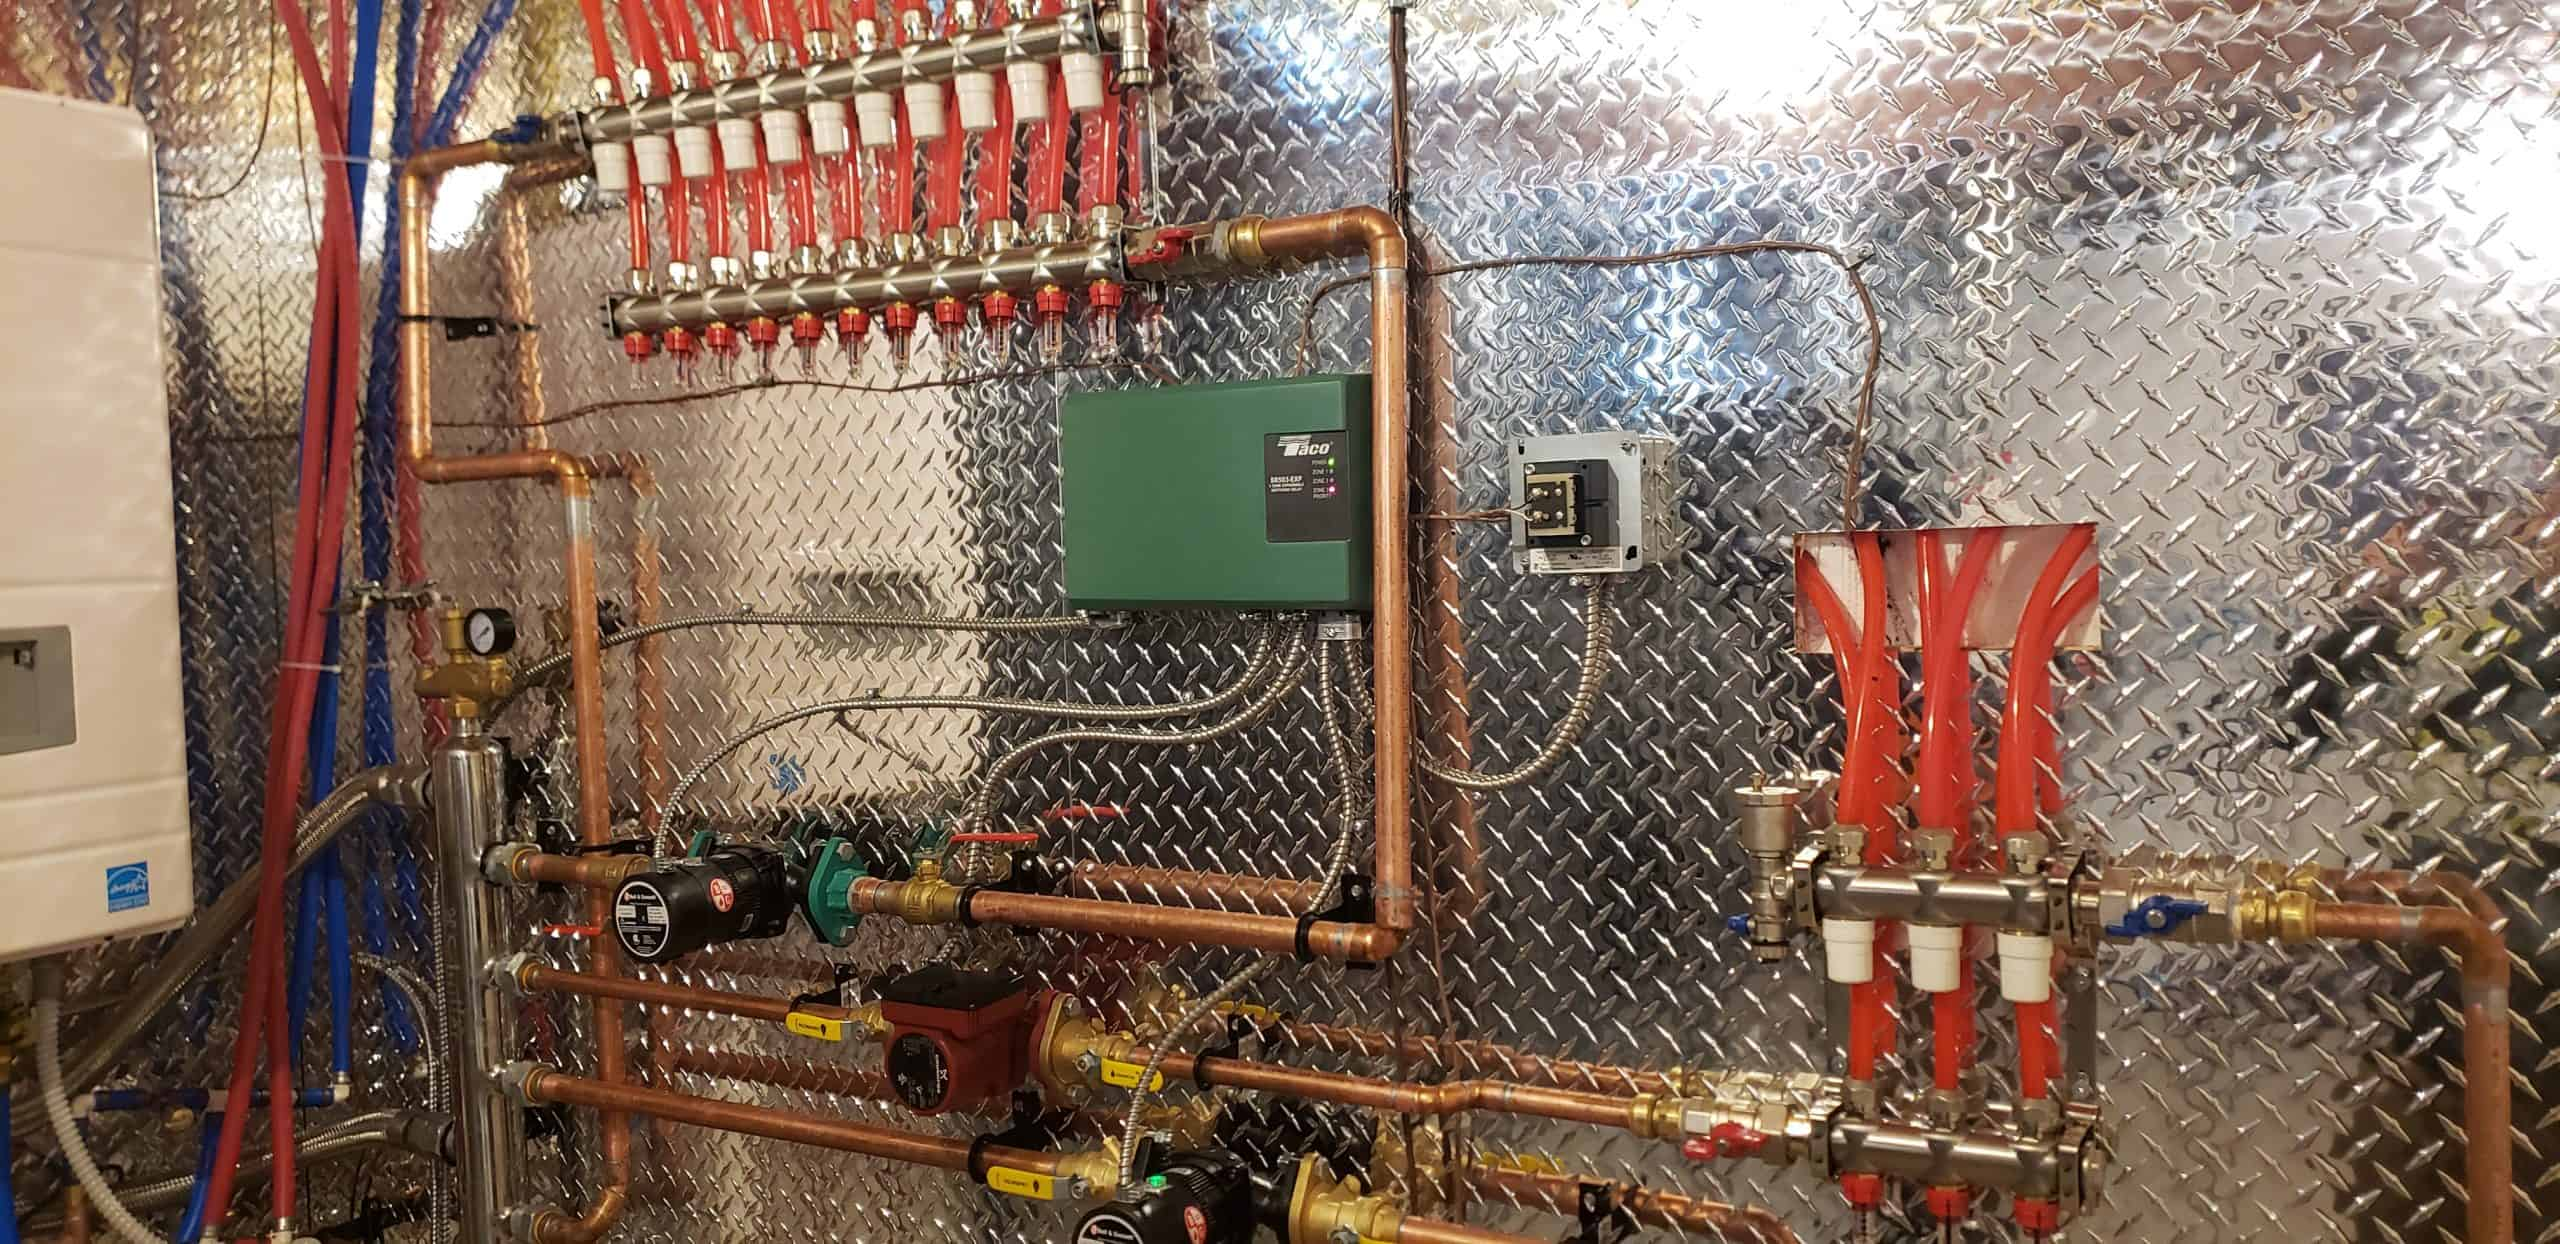 Manifolds and pumps are connected